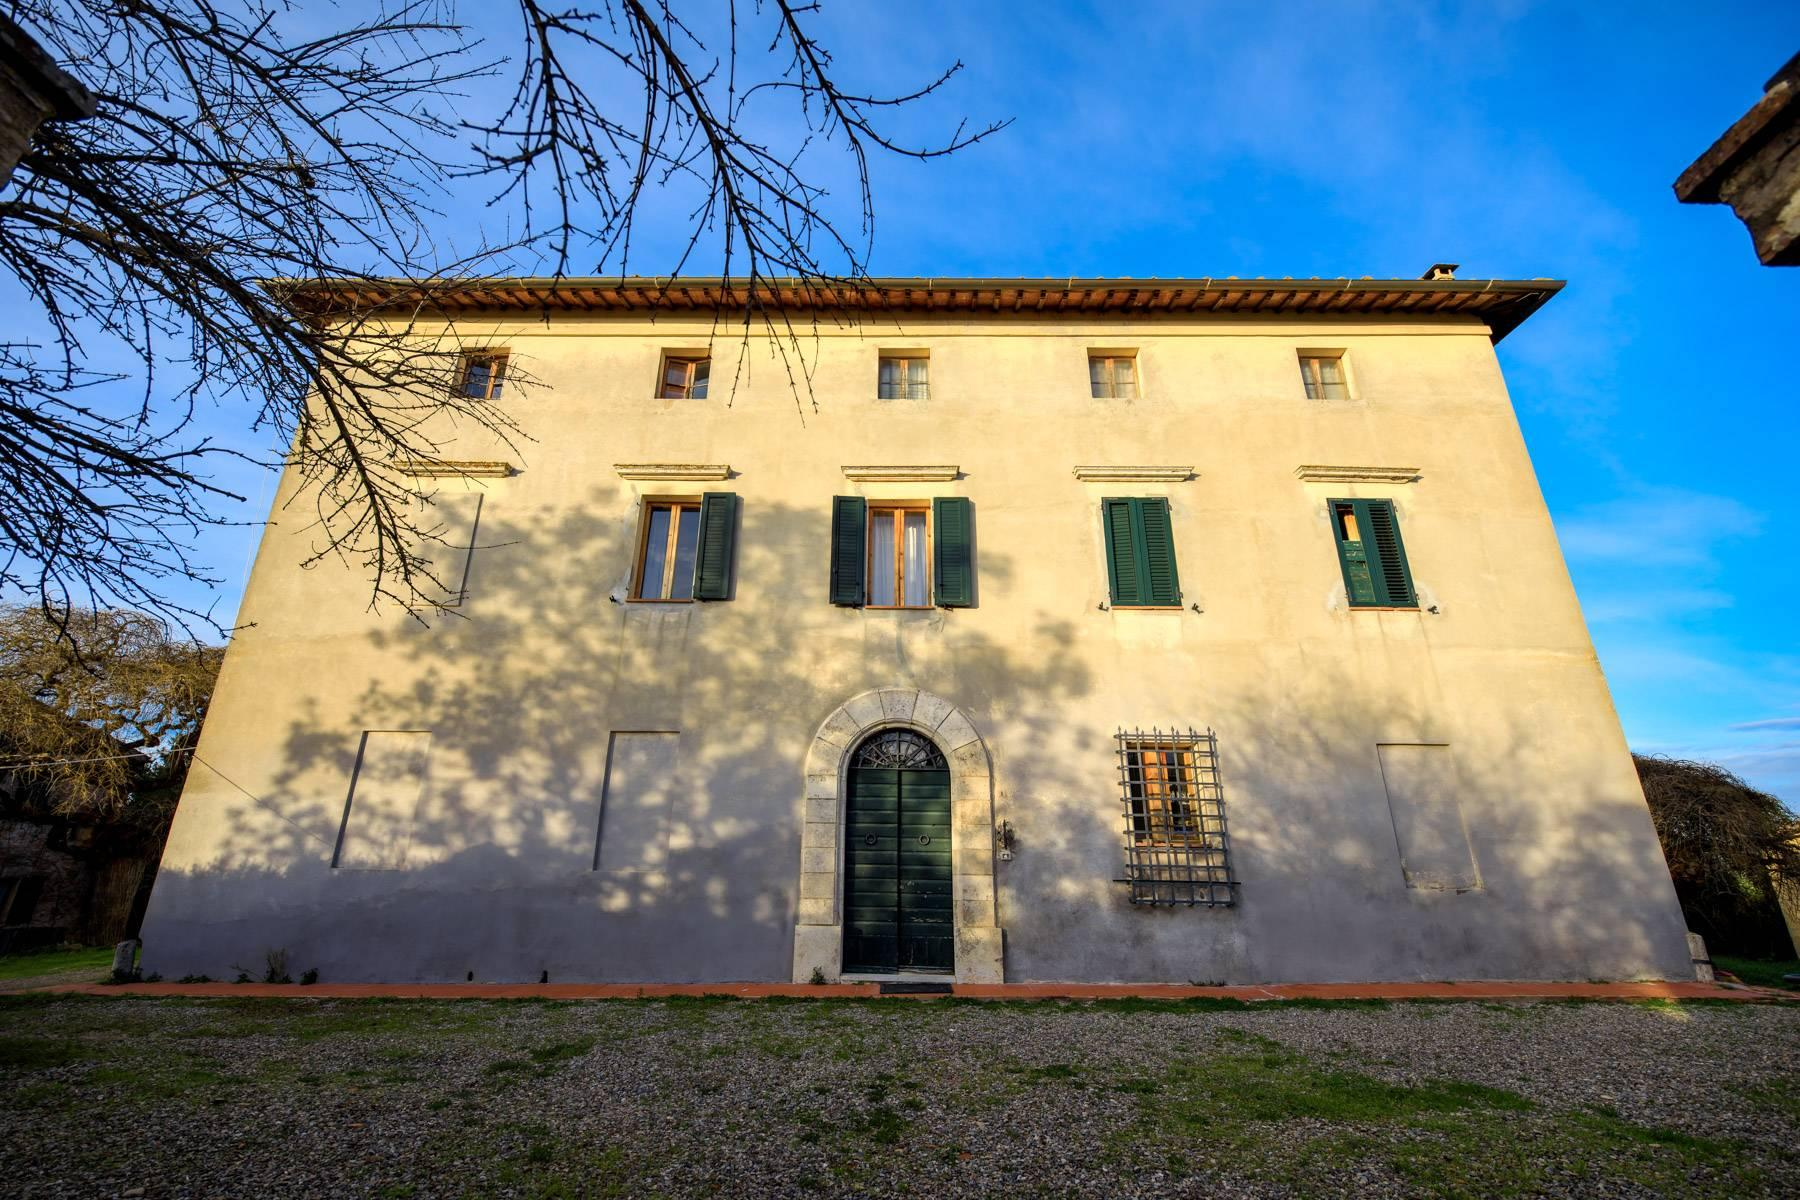 Wonderful historical Villa and country house close by Siena - 51